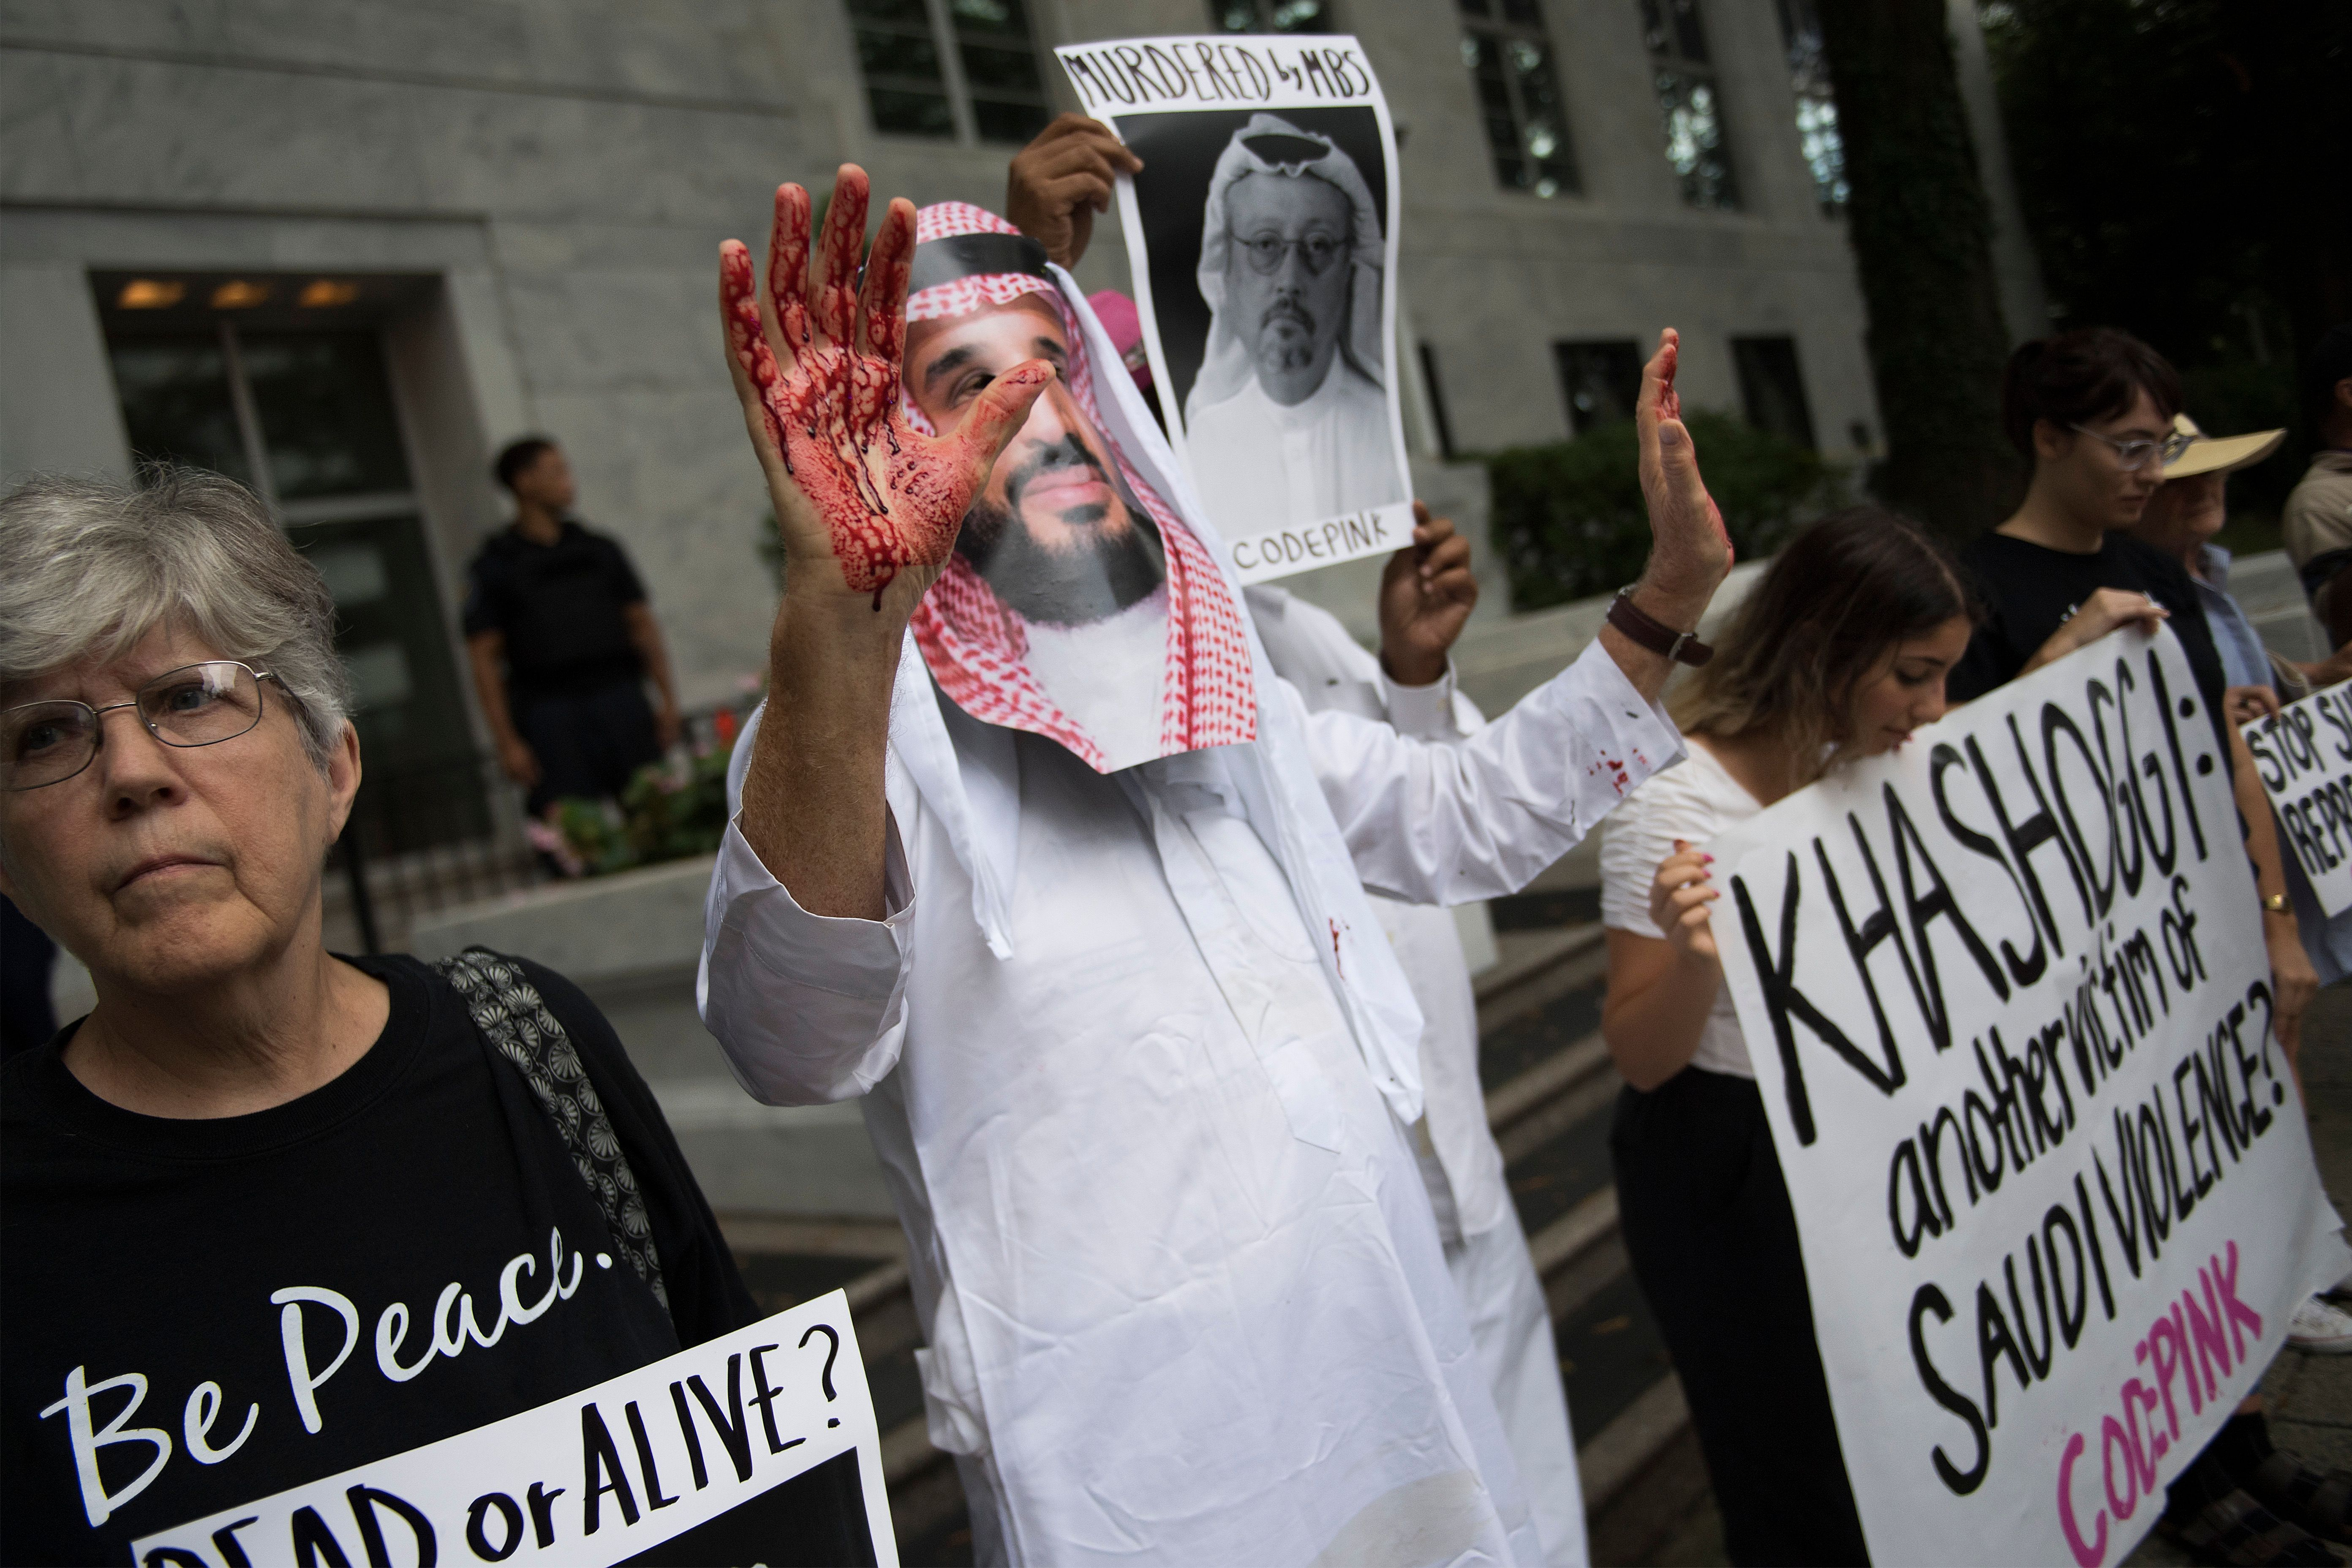 A demonstrator dressed as Saudi Arabian Crown Prince Mohammed bin Salman (C) with blood on his hands protests outside the Saudi Embassy in Washington, DC. (Photo by Jim WATSON / AFP)